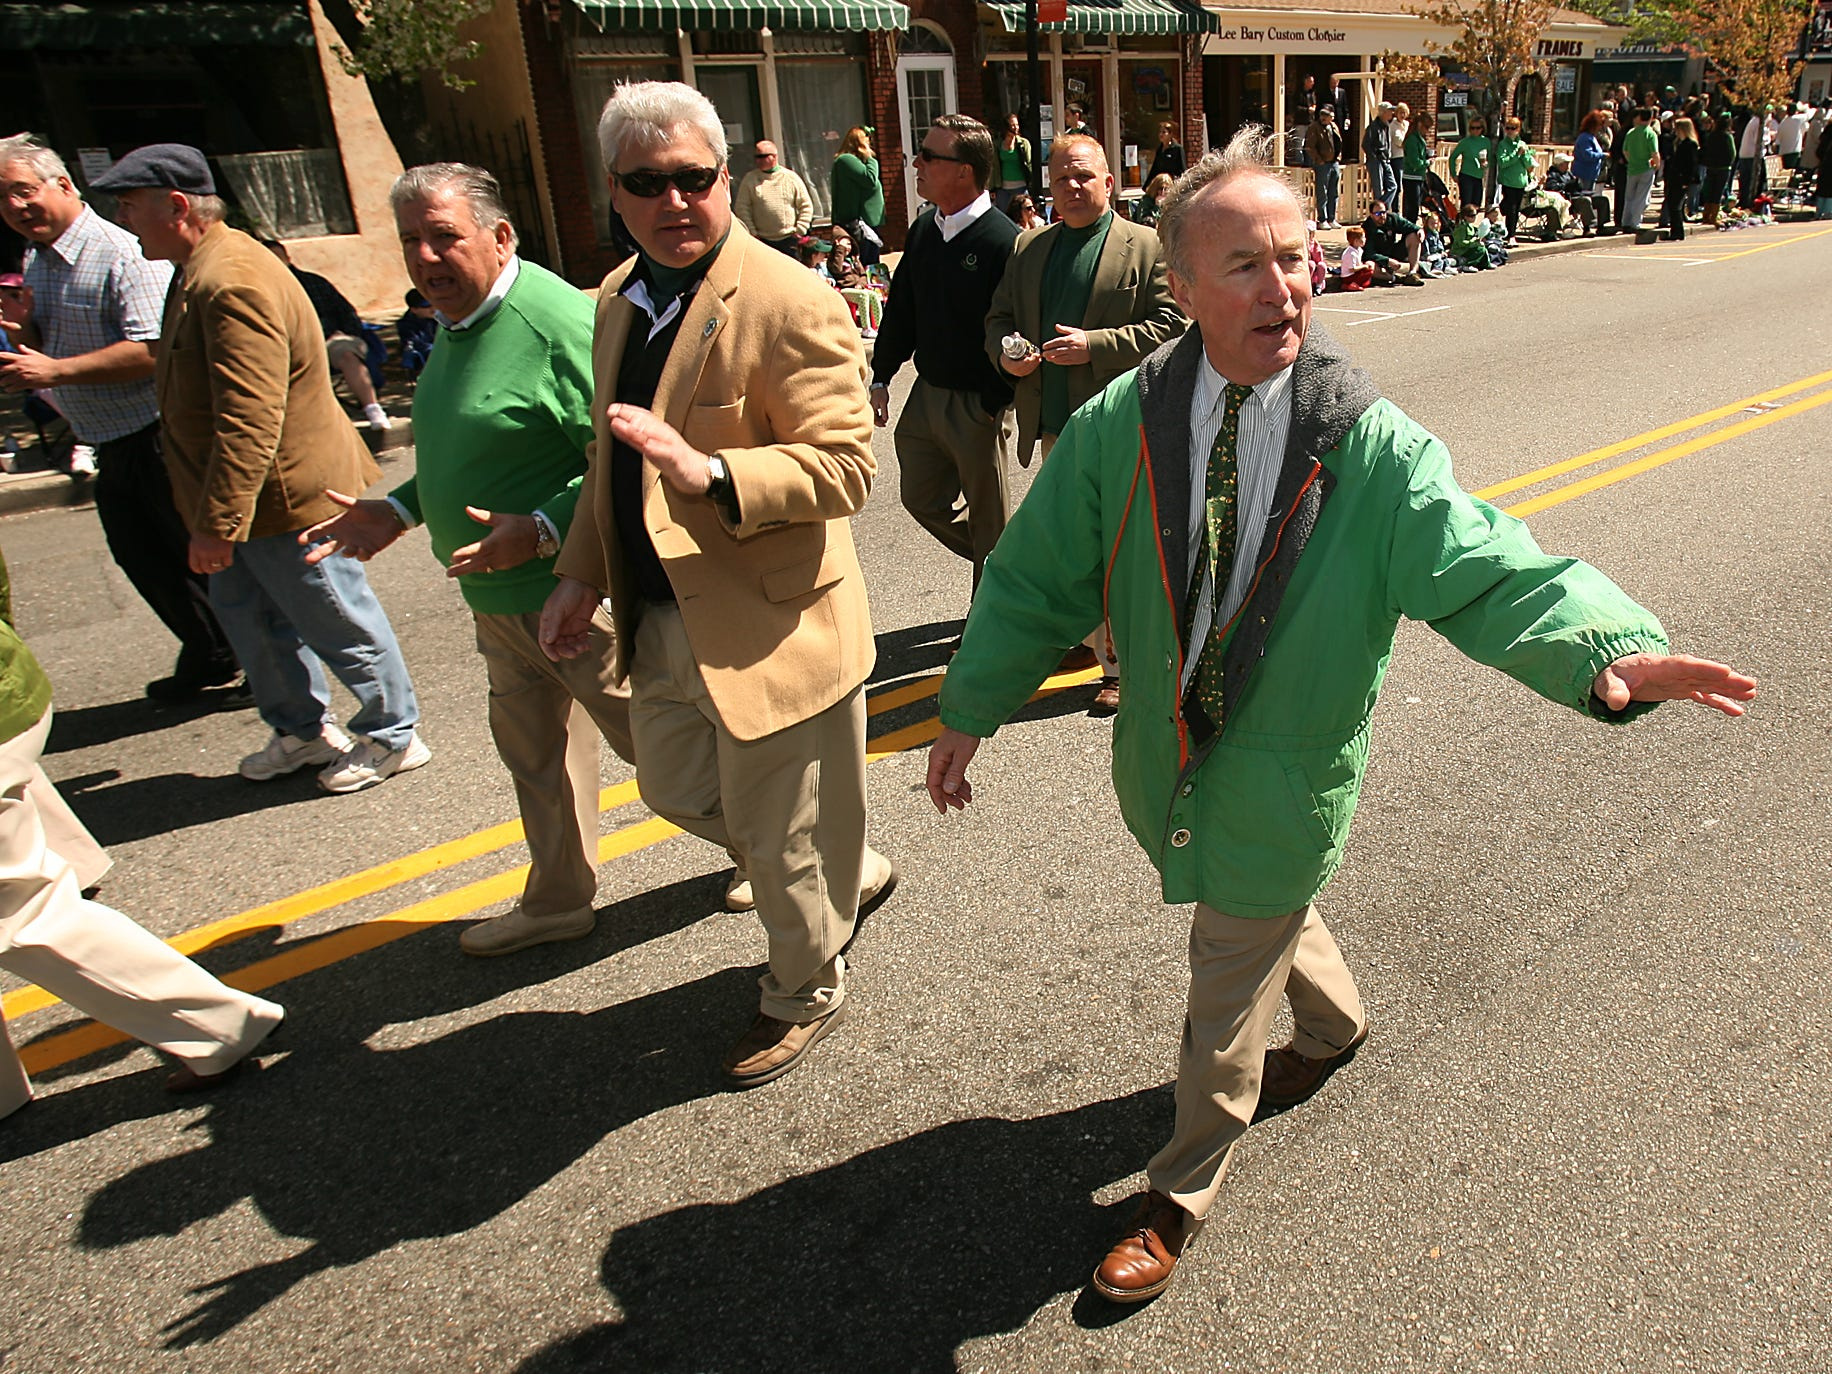 Morristown, April 10, 2010-- The 32nd annual Morris County St. PatrickÕs Day Parade, postponed at the last minute by severe weather on March 13, kicked off at noon Saturday, featuring grand marshal John Butler of Succasunna, with more than 100 groups and 20 bands taking part.